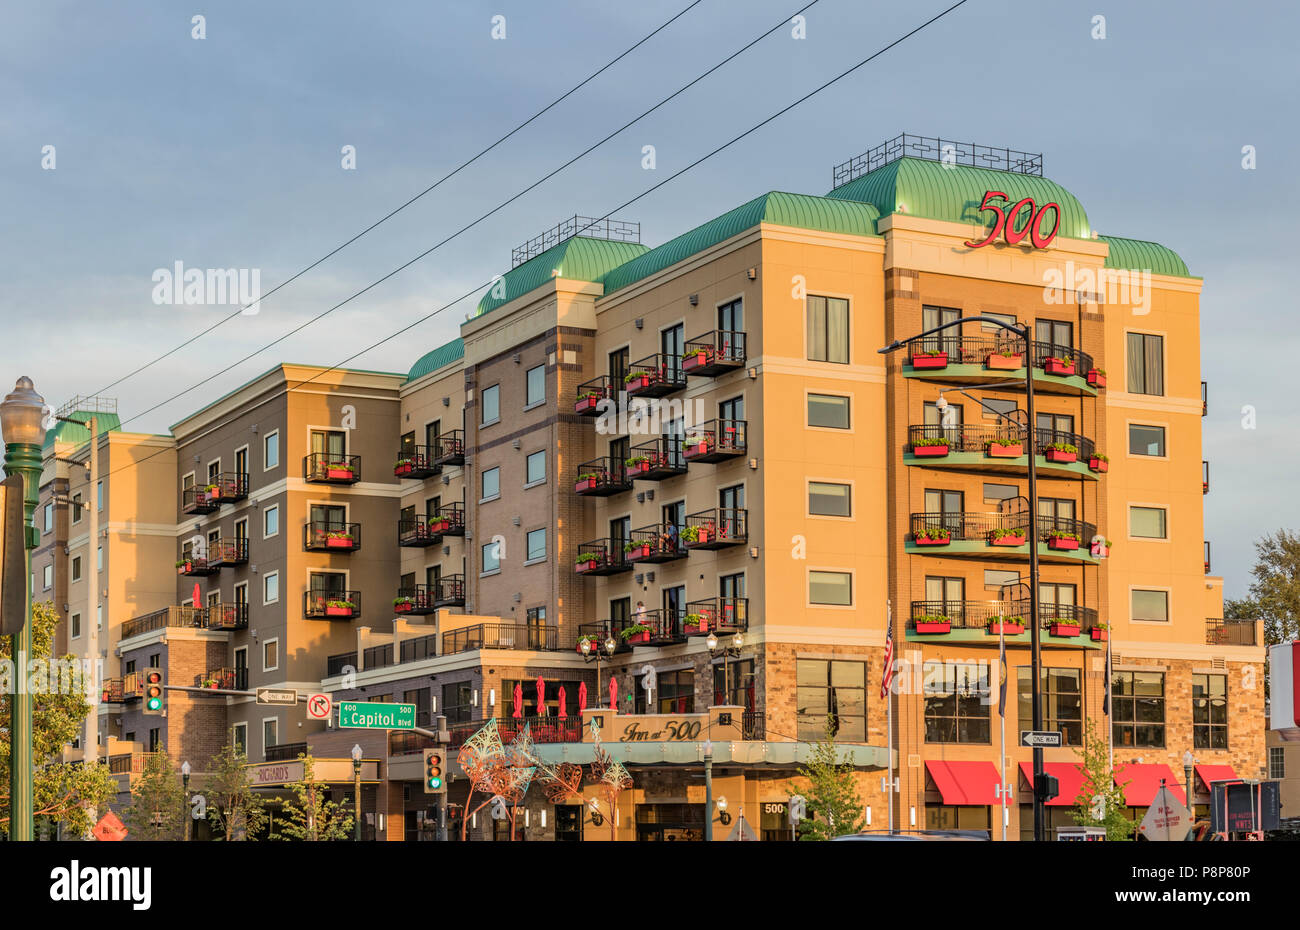 Boise Idaho In The Evening Stock Photos & Boise Idaho In The Evening ...